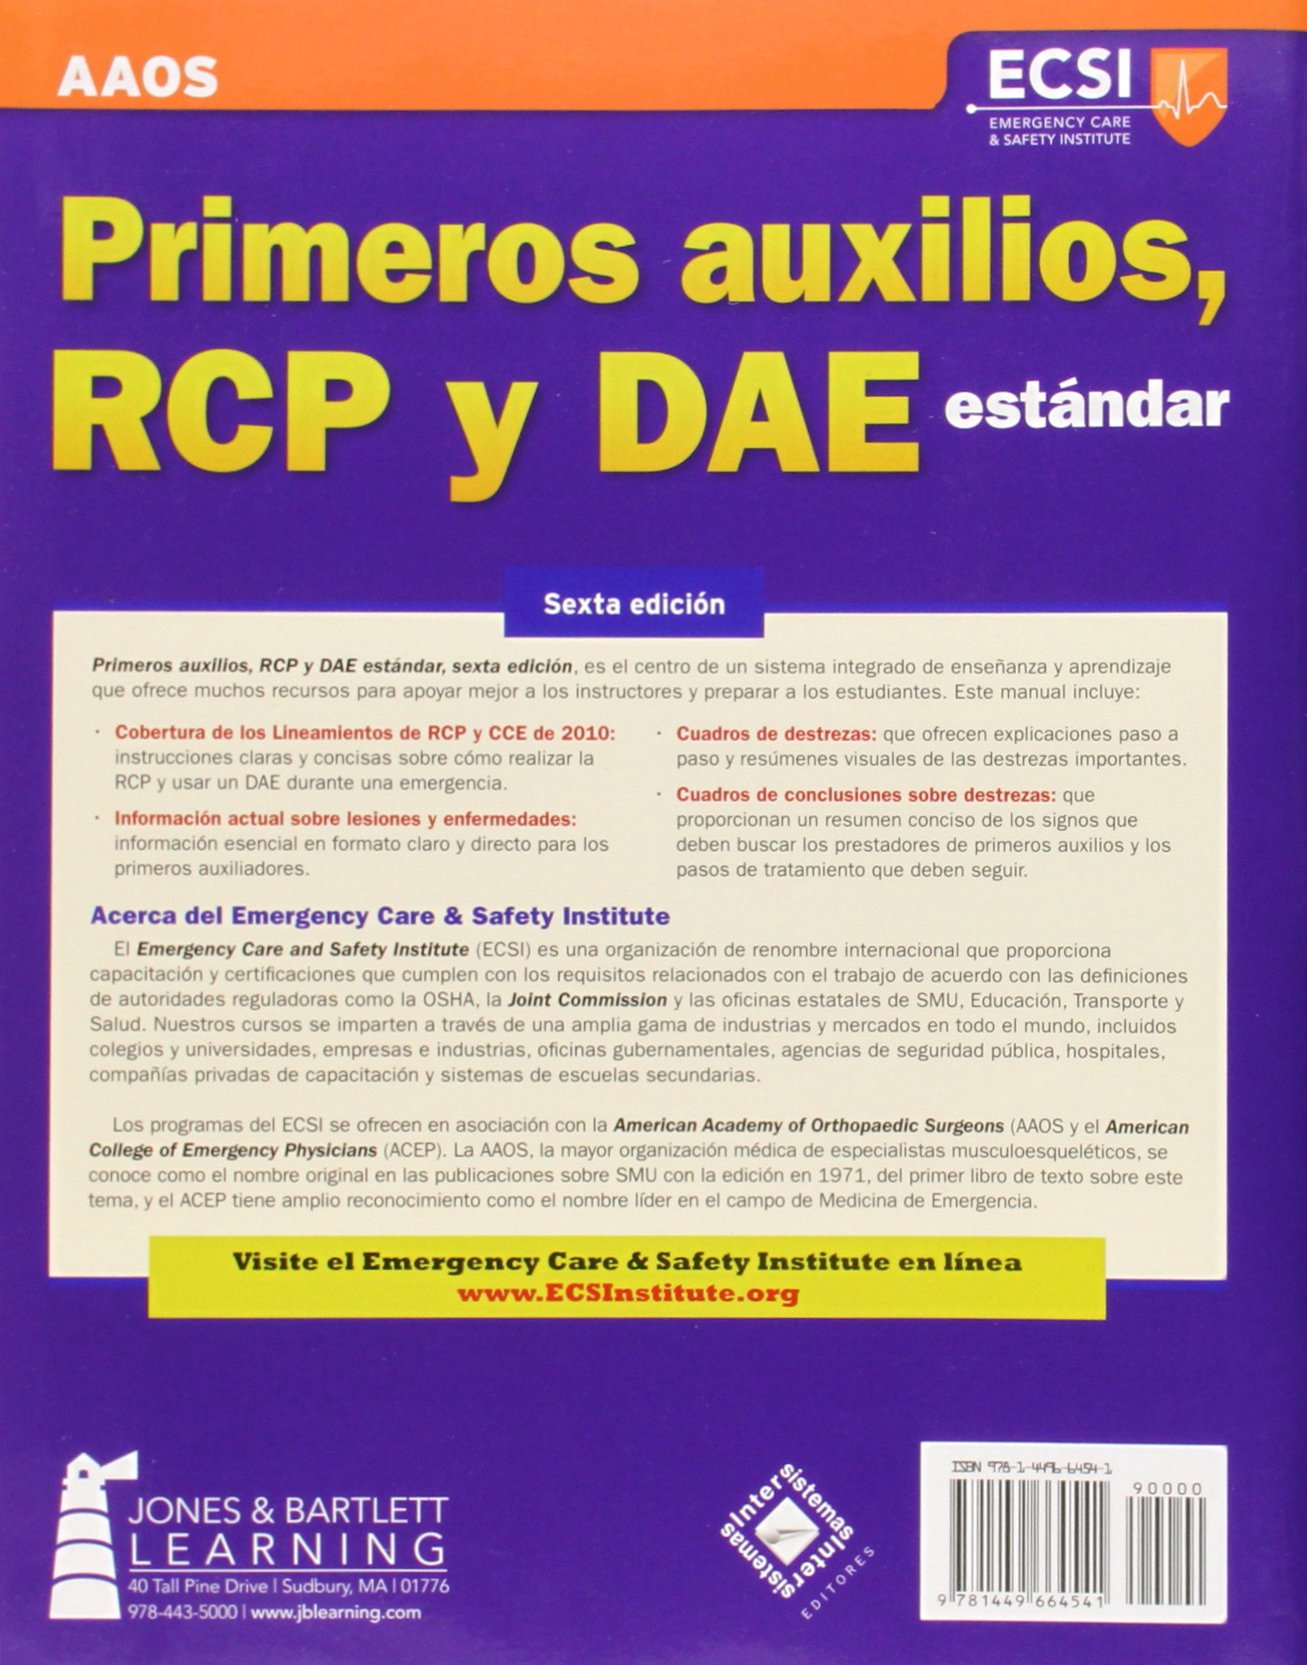 Primeros auxilios rcp y dae estandar sexta edicion amazon primeros auxilios rcp y dae estandar sexta edicion amazon american academy of orthopaedic surgeons aaos american college of emergency physicians fandeluxe Image collections